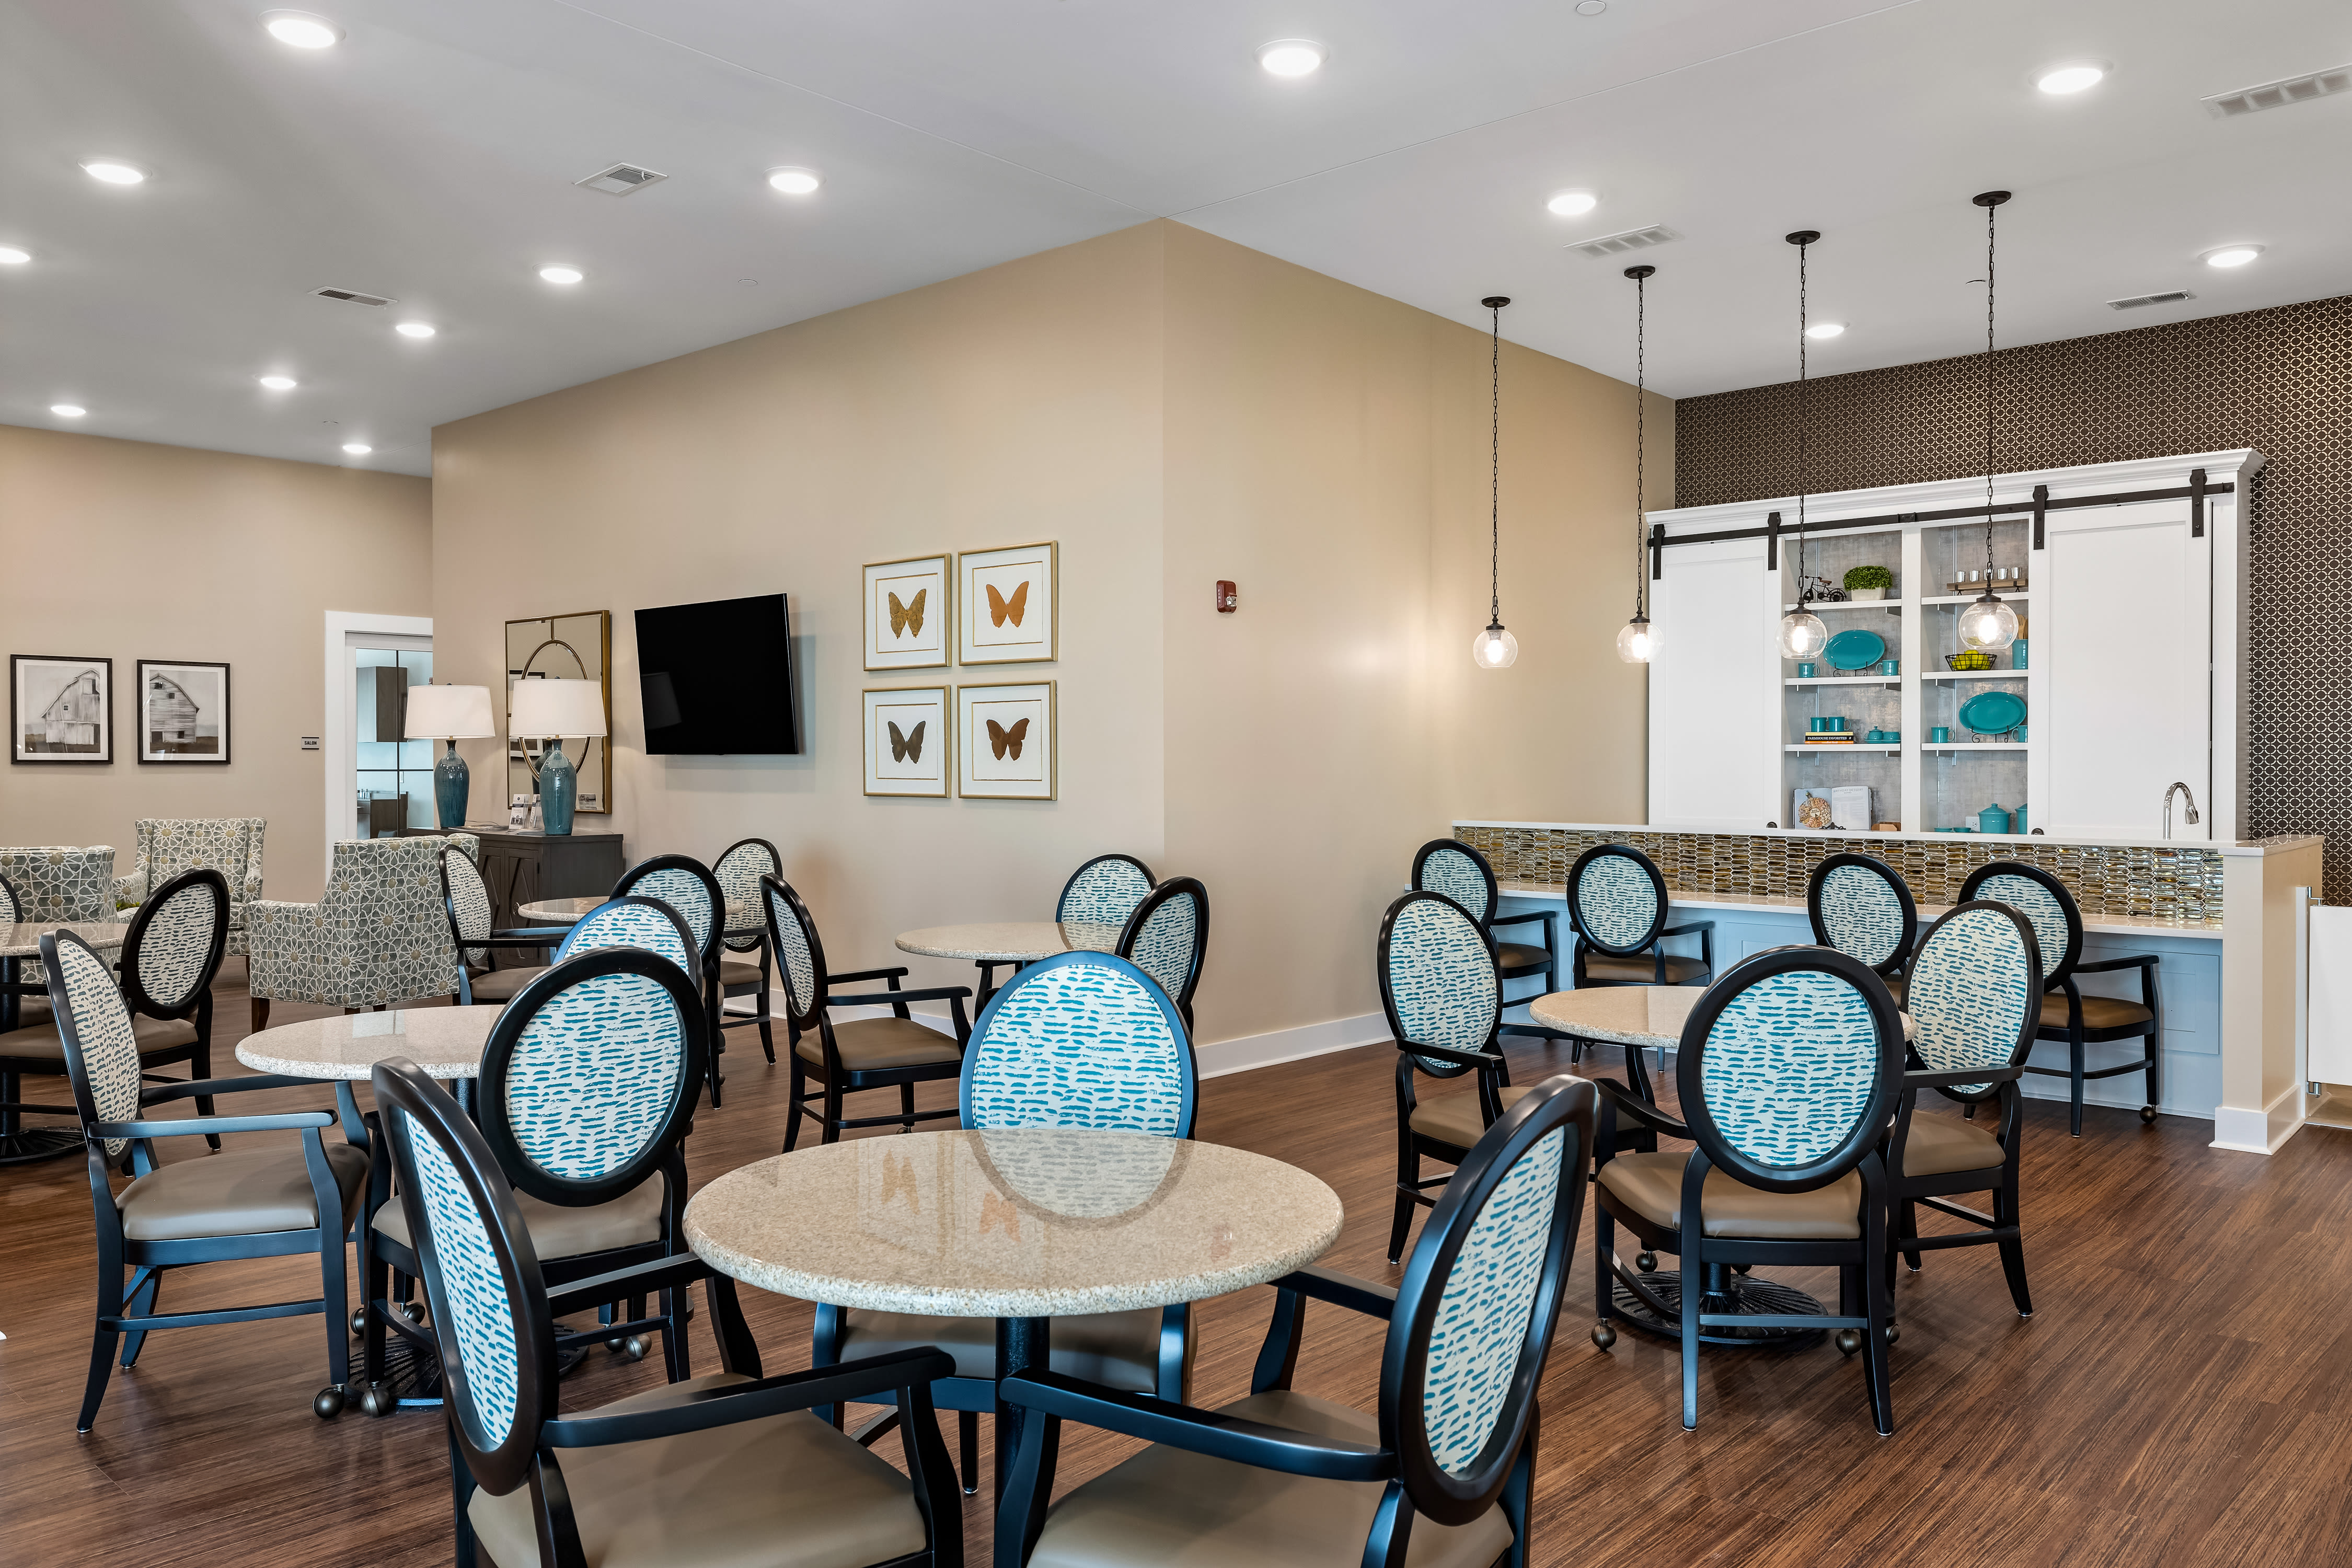 Kitchen and dining hall of The Claiborne at Newnan Lakes in Newnan, GA